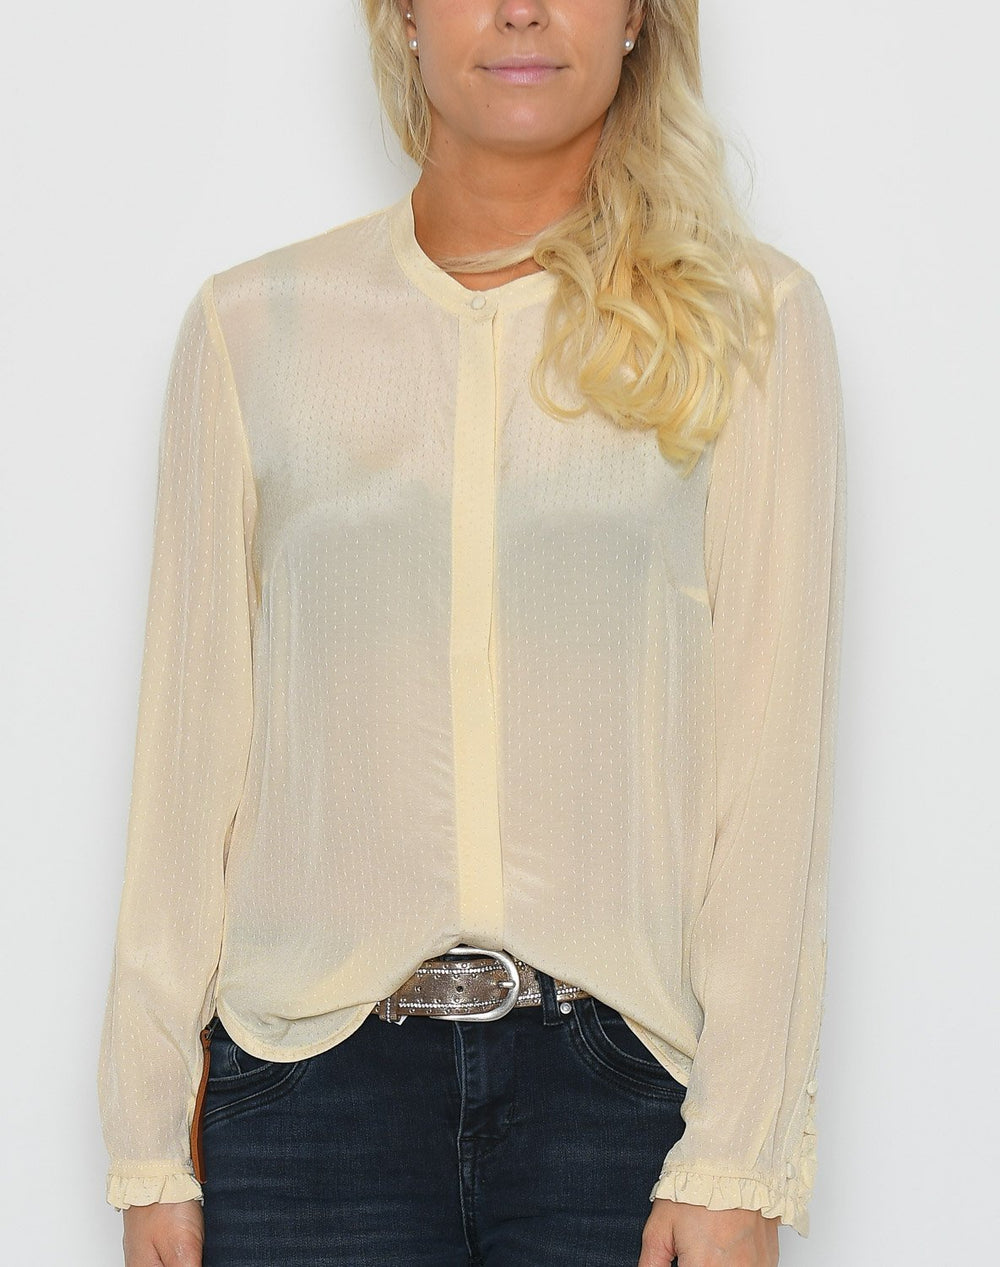 Luxzuz Magdalenia shirt off white - Online-Mode